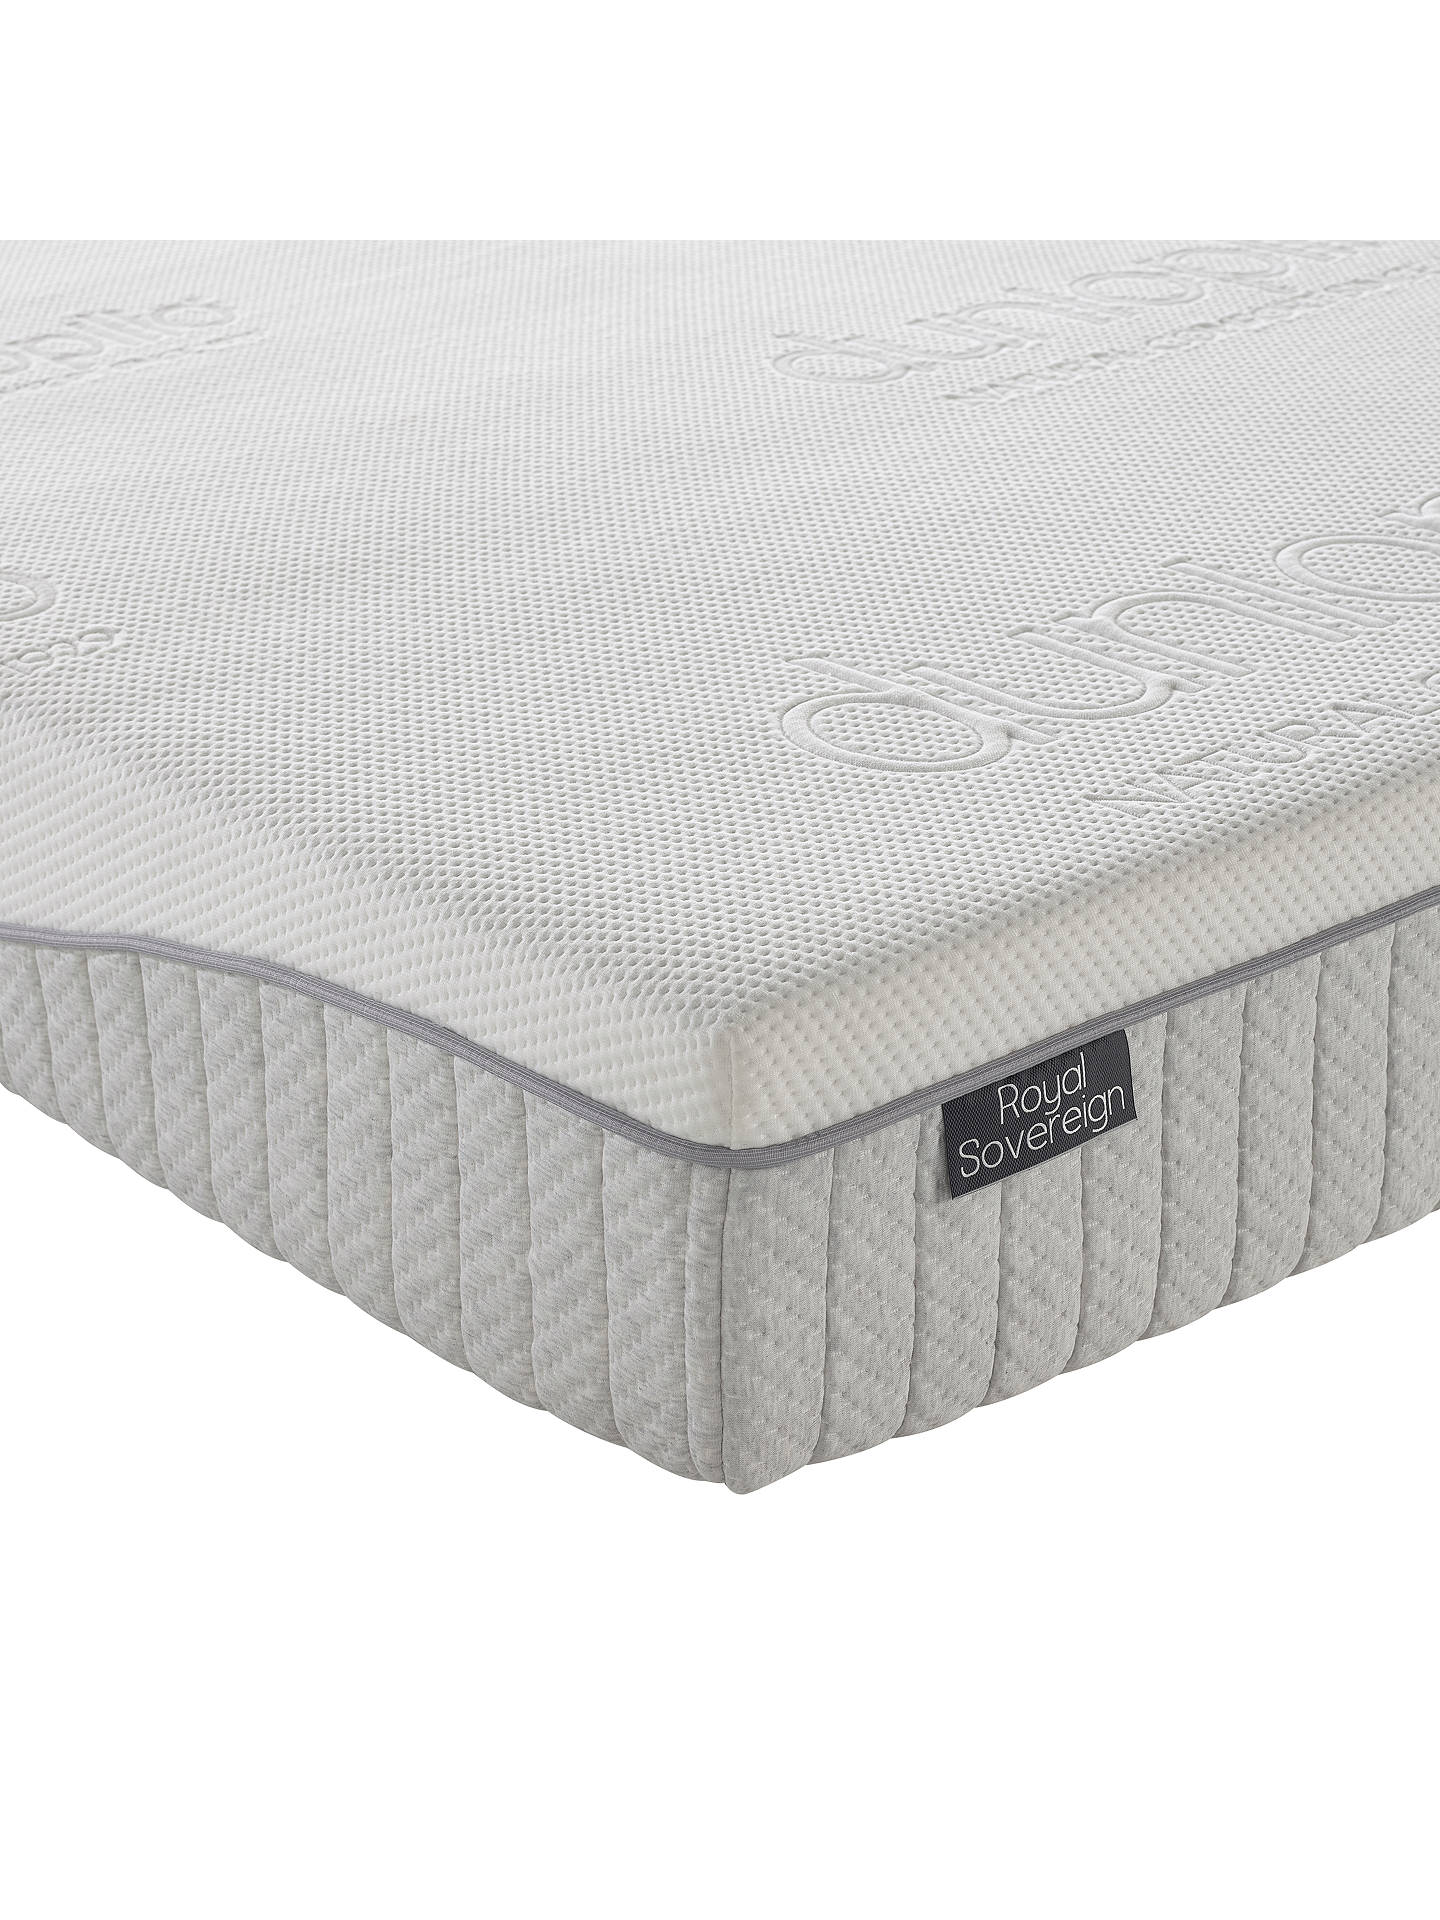 Dunlopillo Royal Sovereign Latex Mattress Medium Single At John